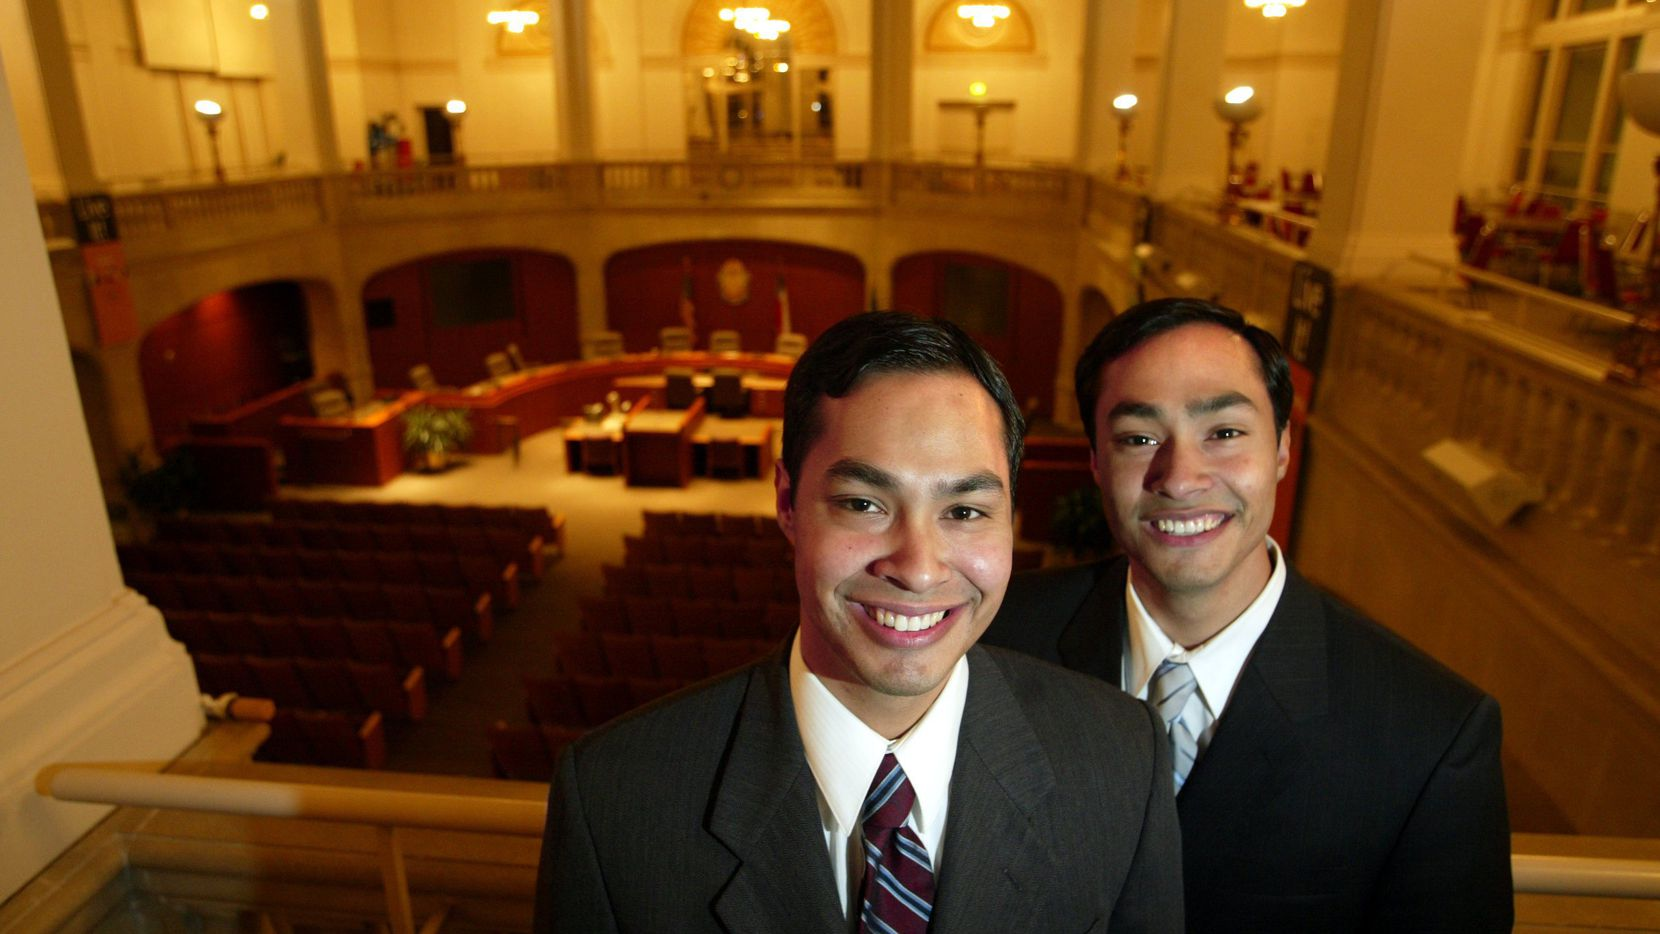 San Antonio city council member Julian Castro (L)  and twin brother Texas state representative Joaquin Castro.  (Richard Michael Pruit/The Dallas Morning News)